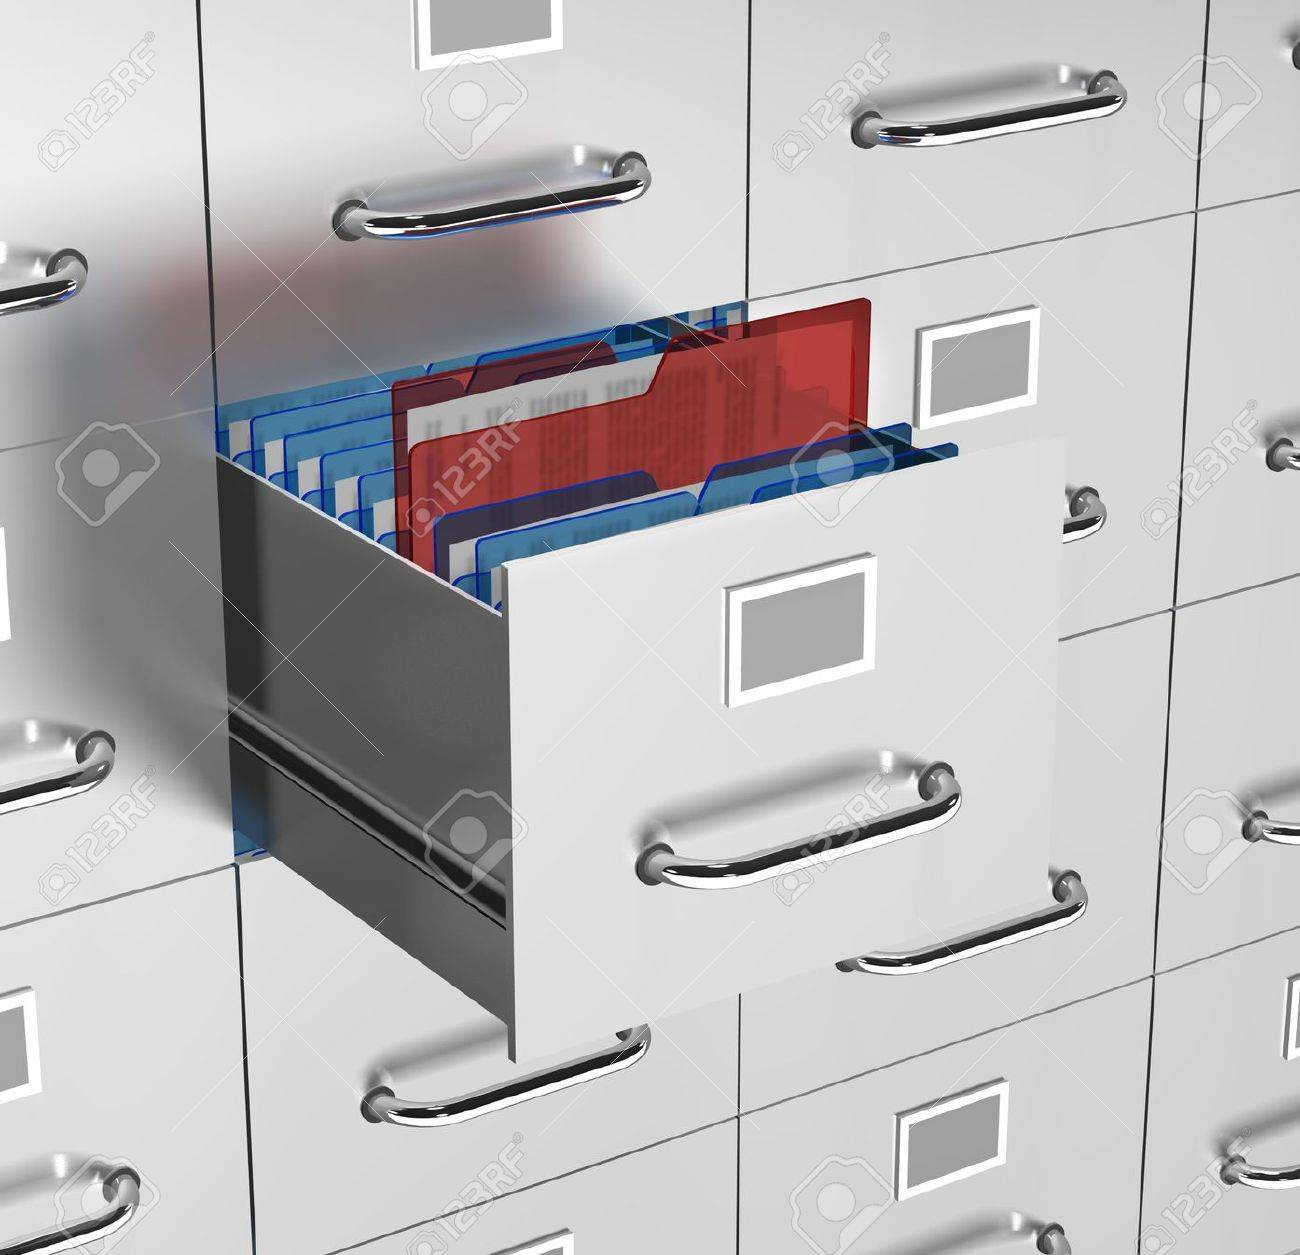 a file drawer is open with office documents on show with a reddocument being selected Stock Photo - 13042117